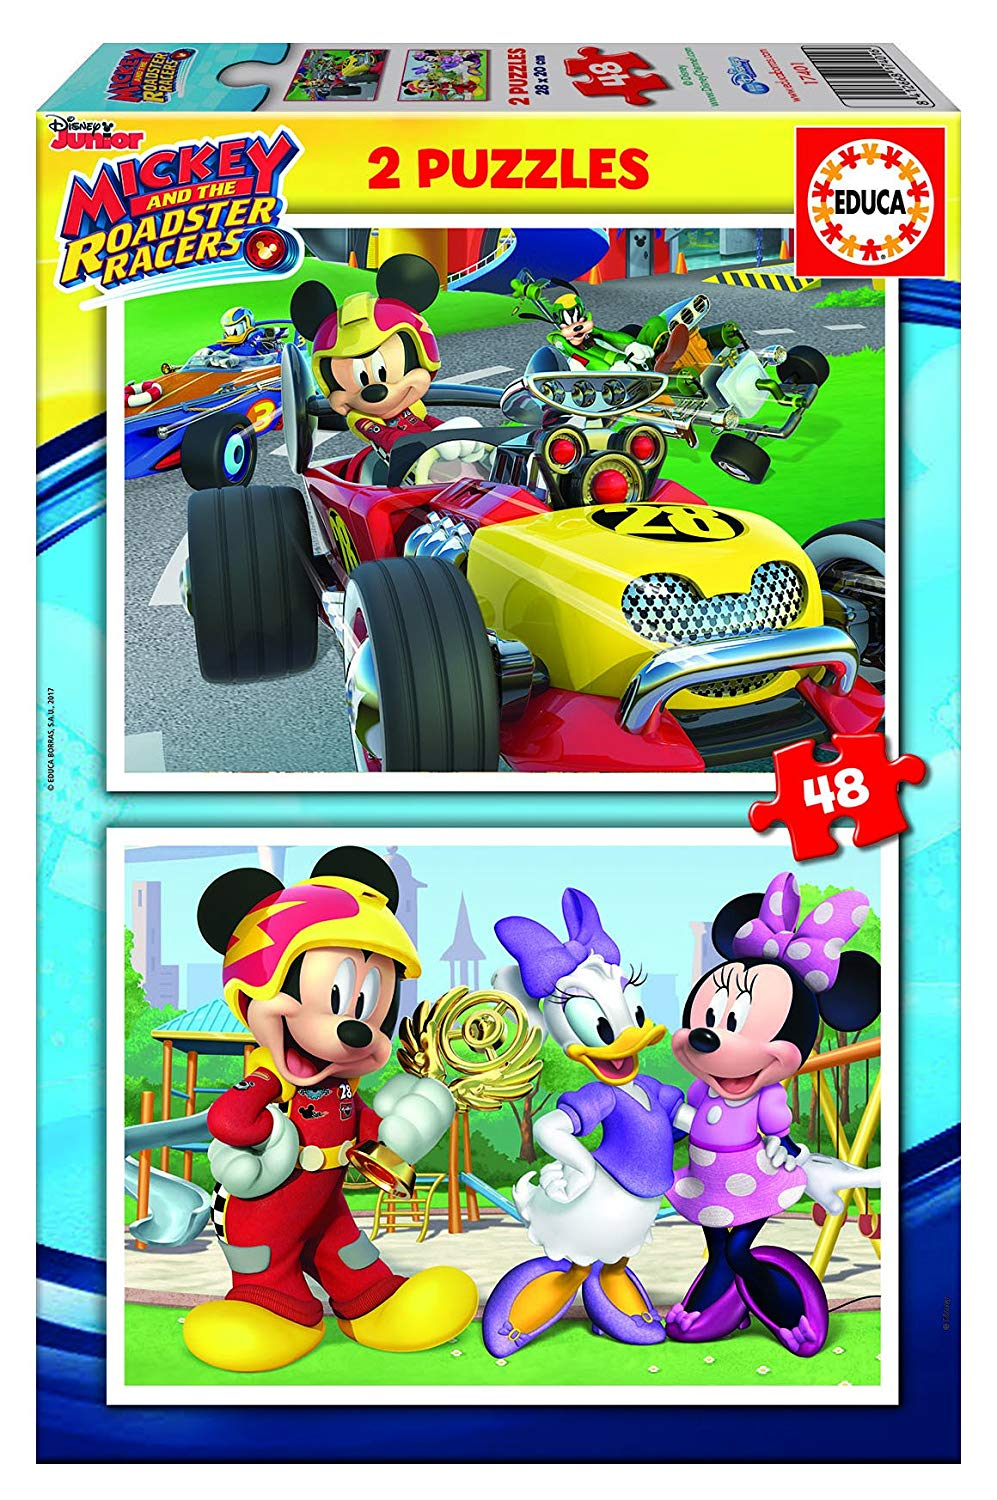 2-puzzles-mickey-and-the-roadster-racers